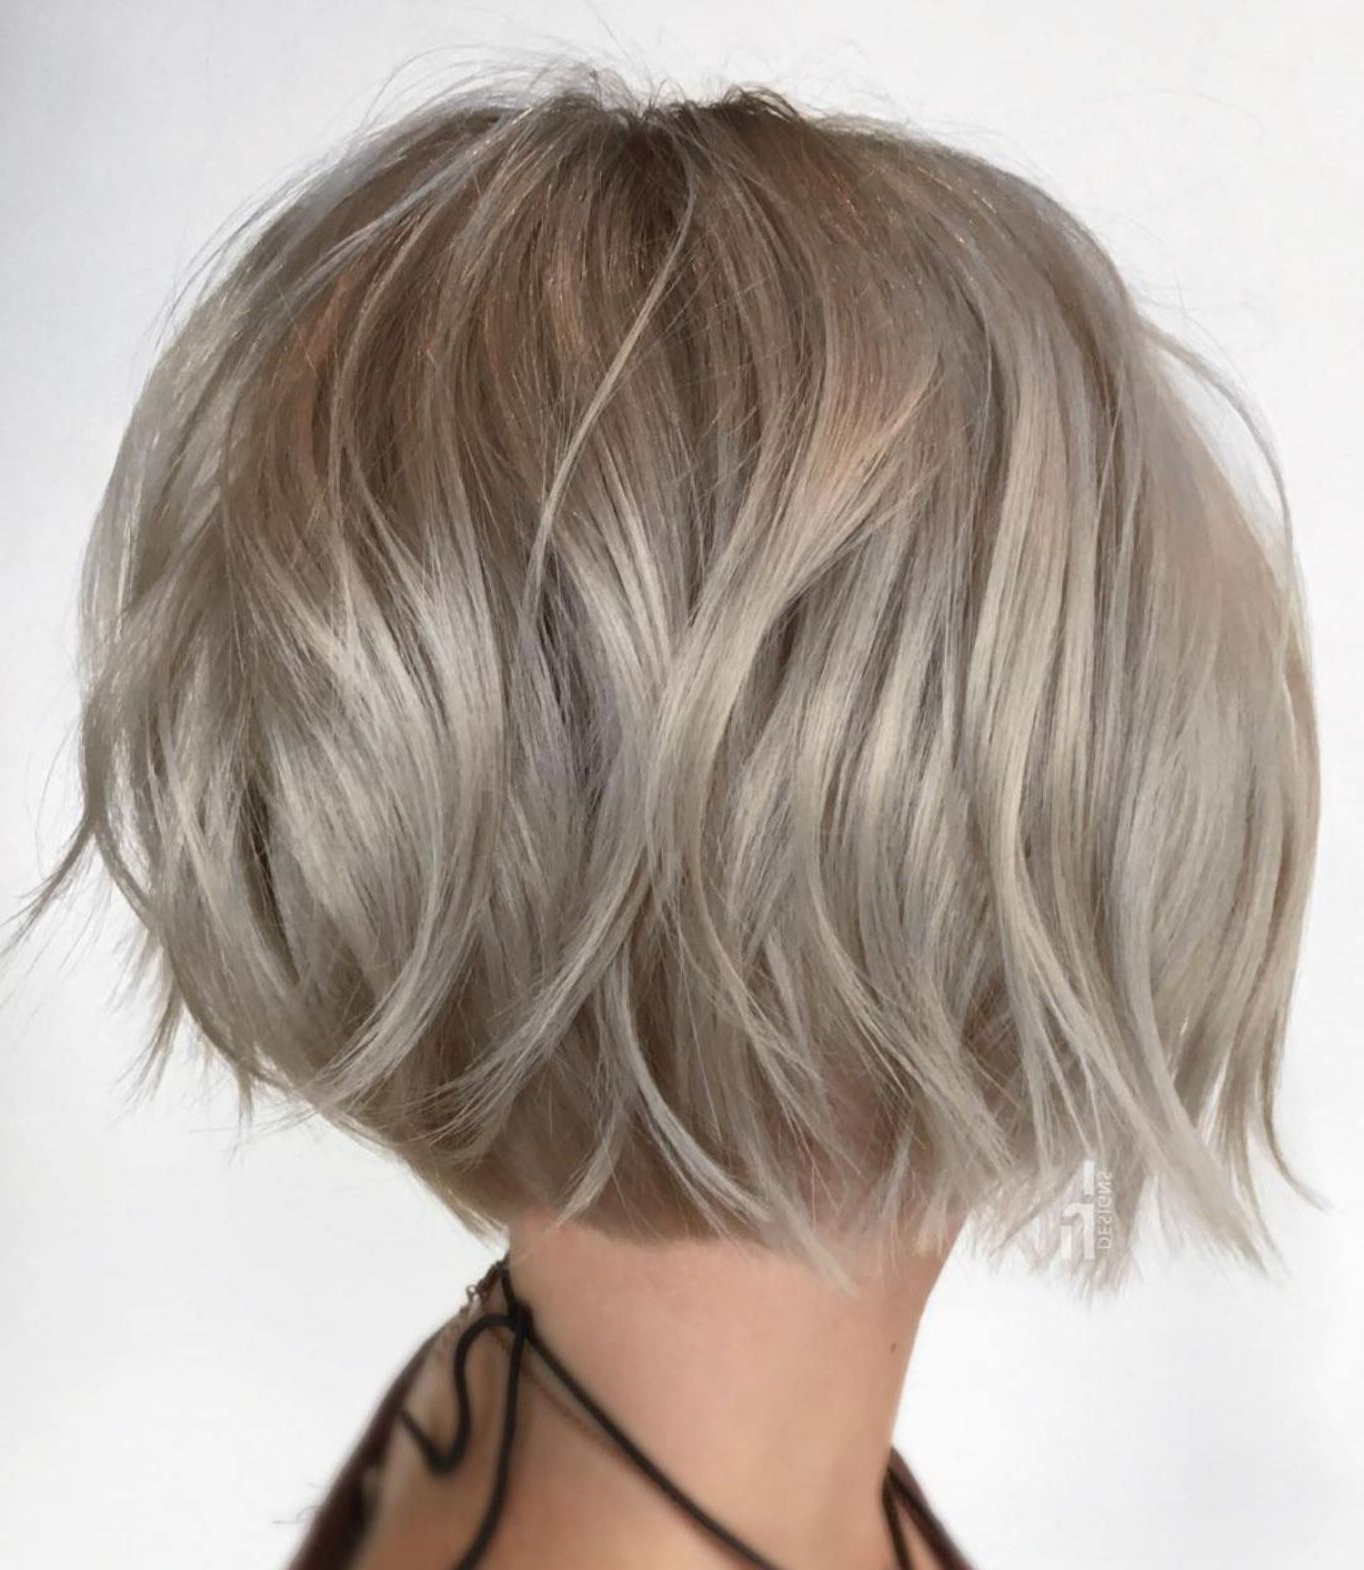 100 Mind Blowing Short Hairstyles For Fine Hair | Choppy Bob For Ash Blonde Short Hairstyles (View 16 of 25)